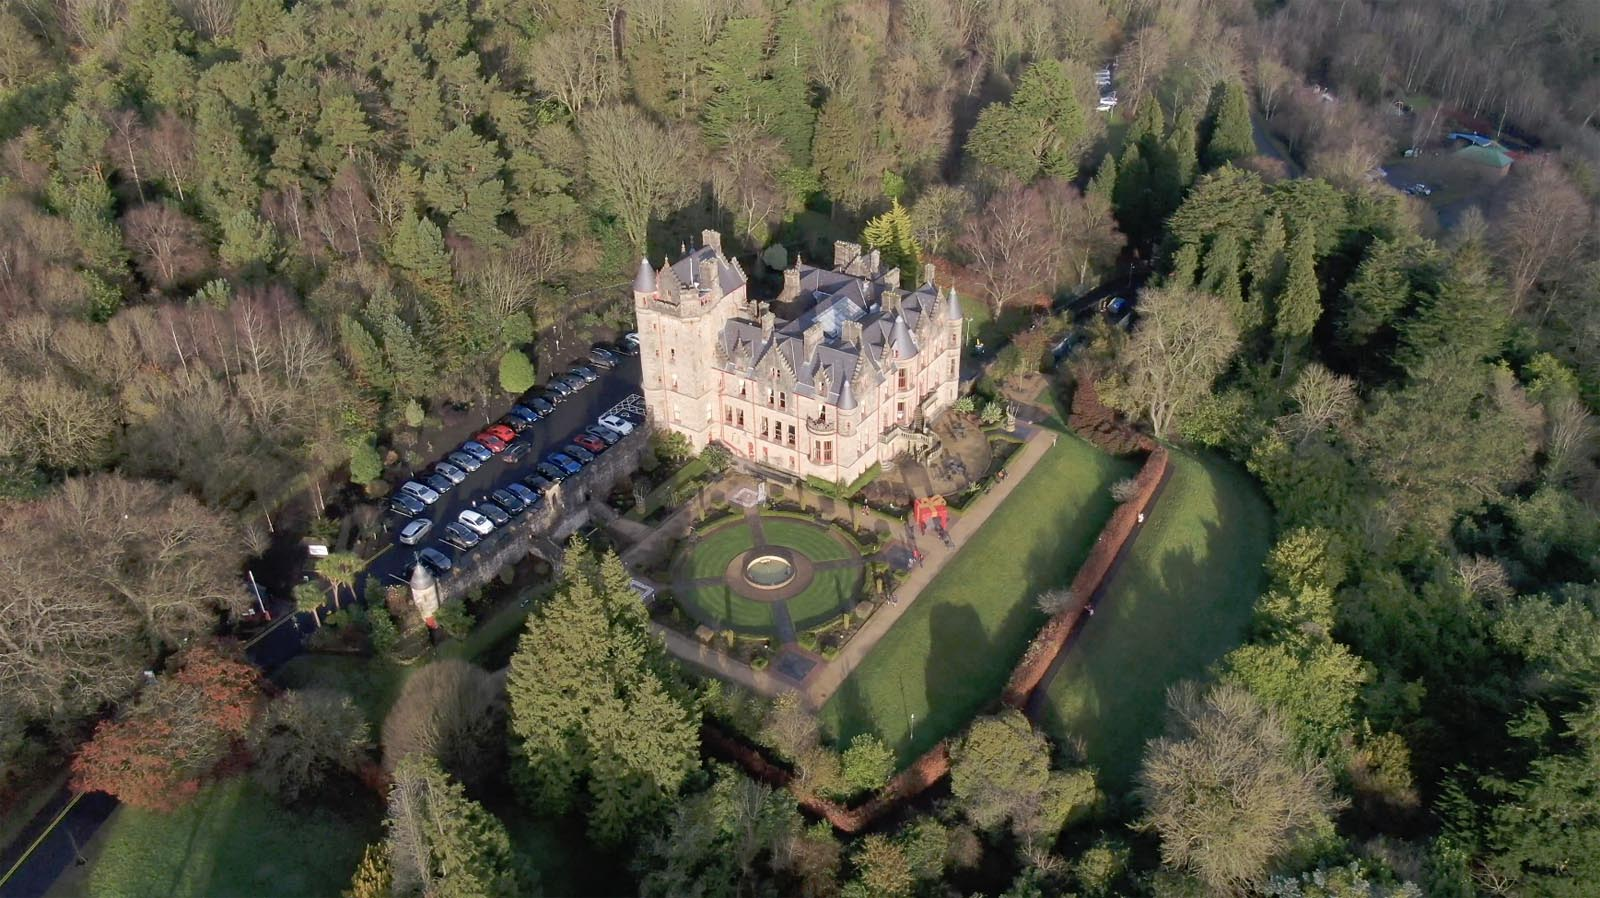 Aerial drone photography and video production services Dublin and Ireland portfolio - changing seasons in one video of Belfast Castle, Northern Ireland, video screenshot 1